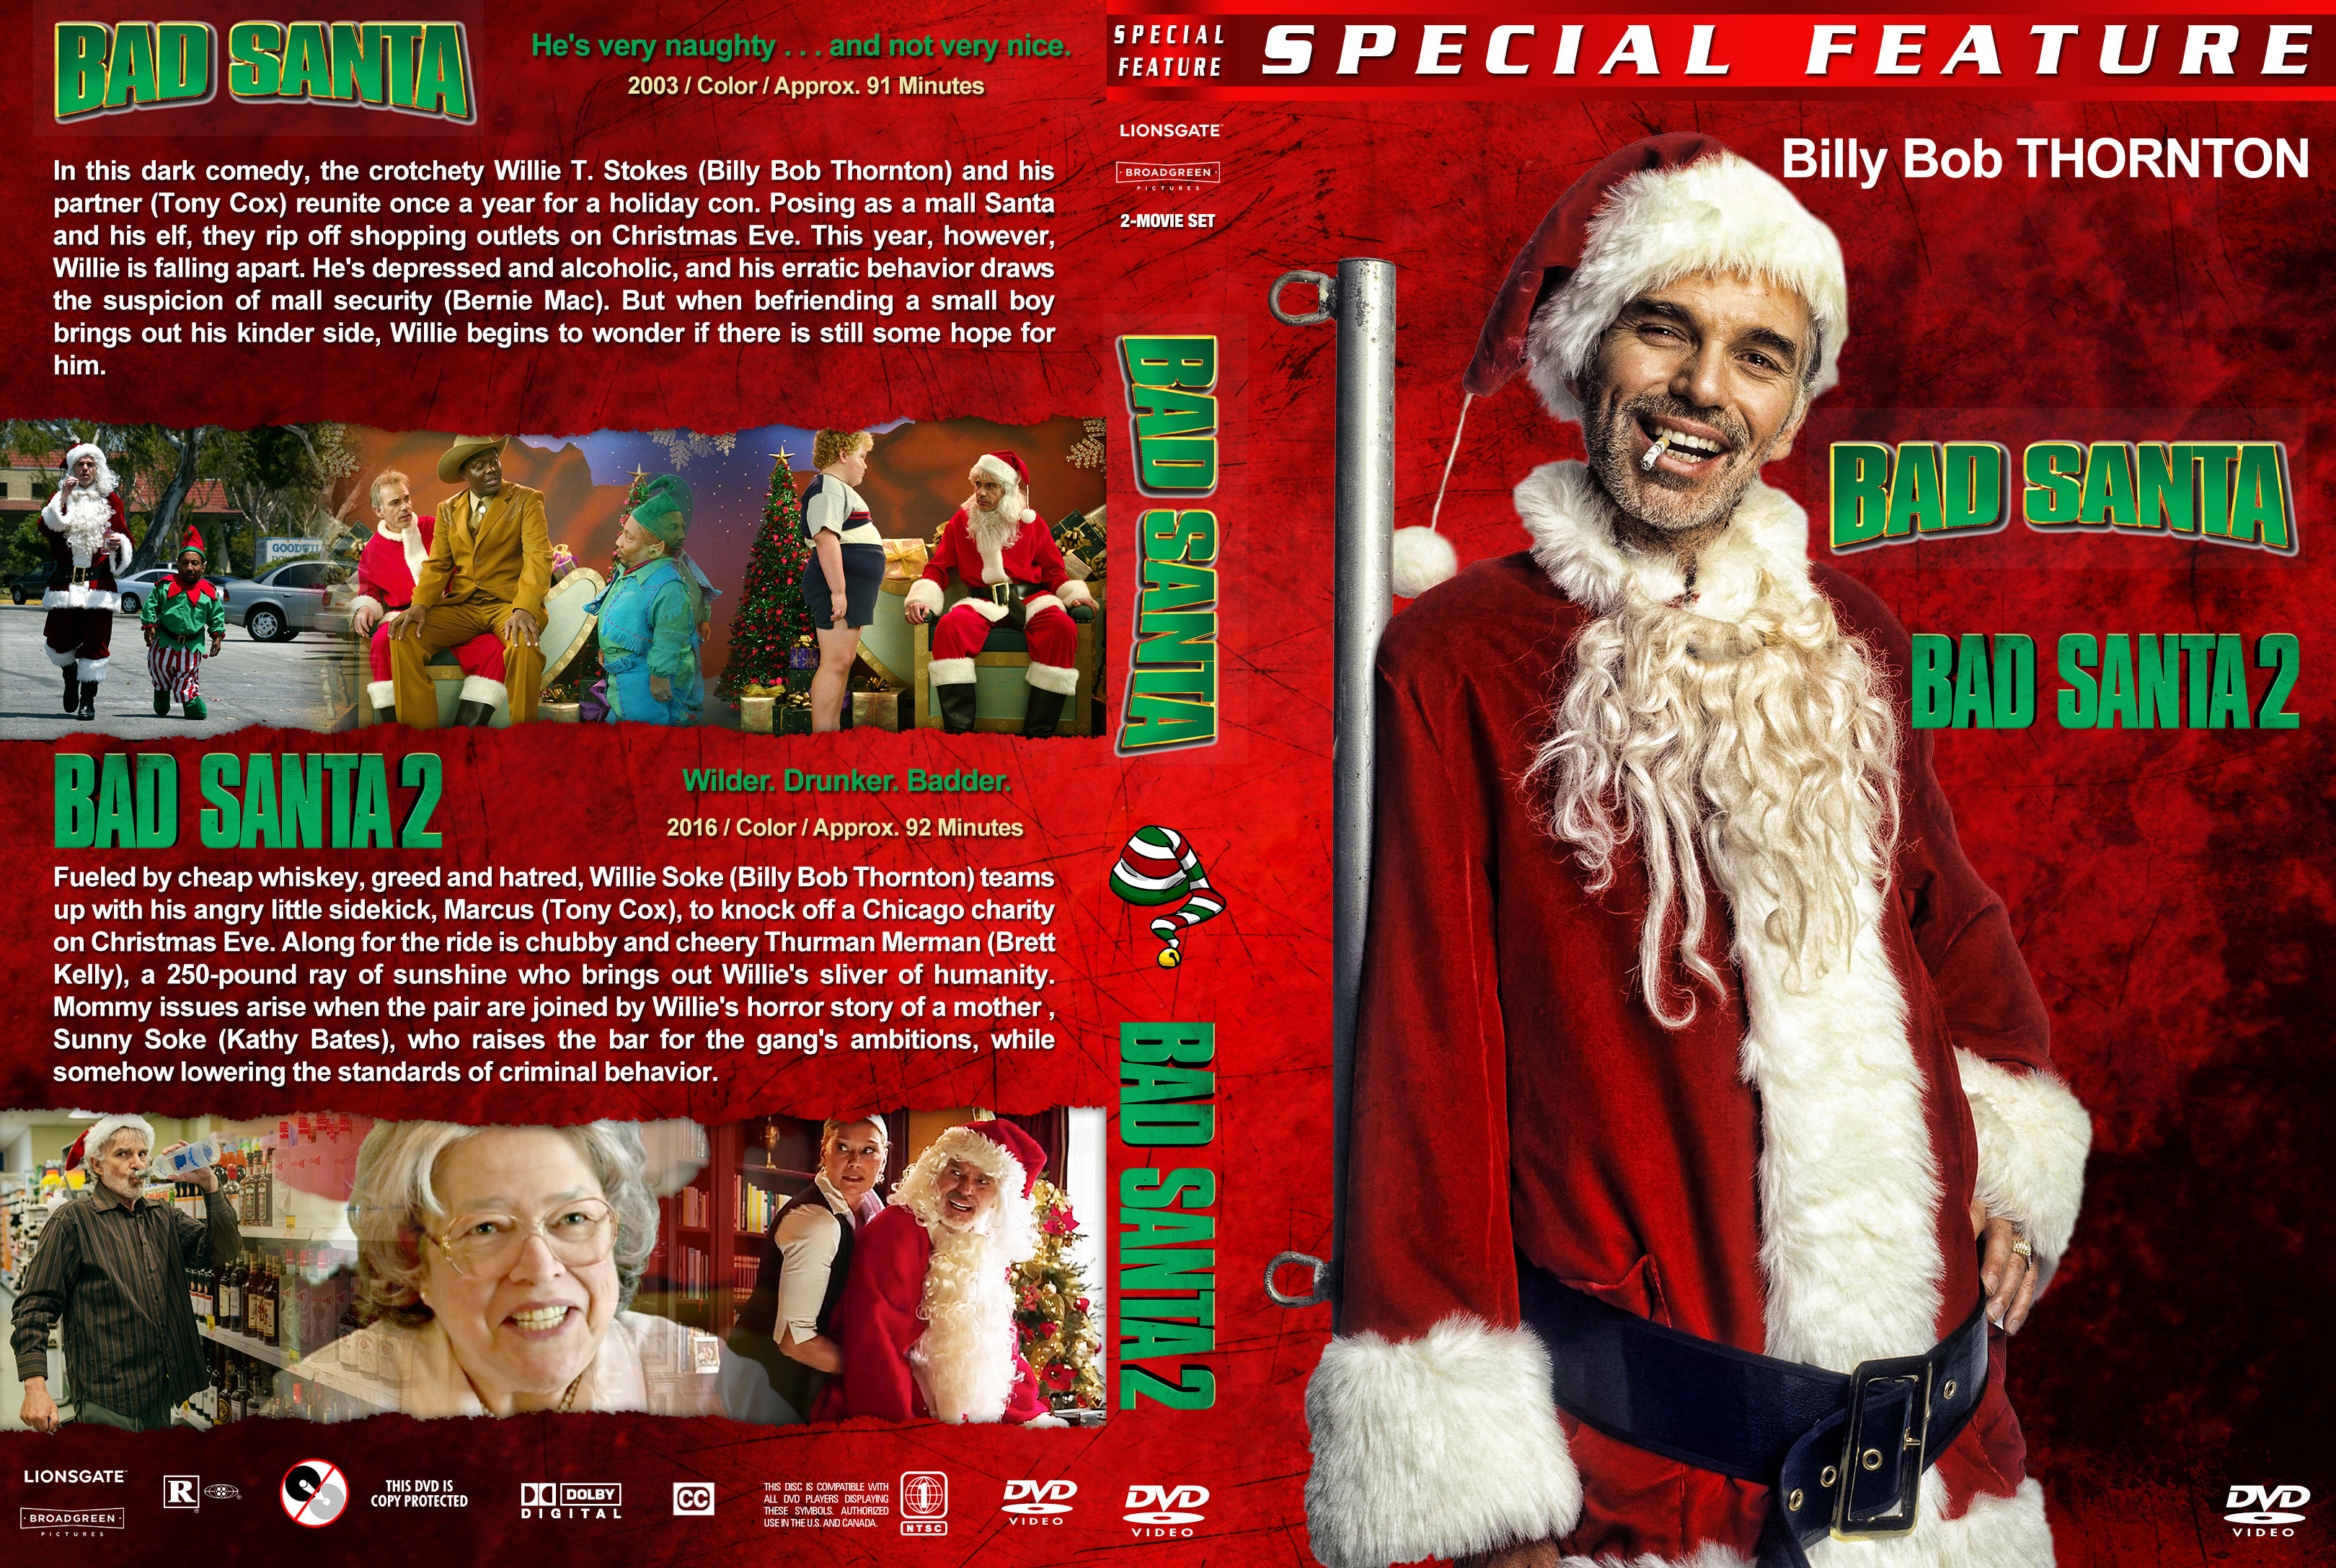 Bad Santa Collection 2003 2016 Covers Dvd Covers And Labels